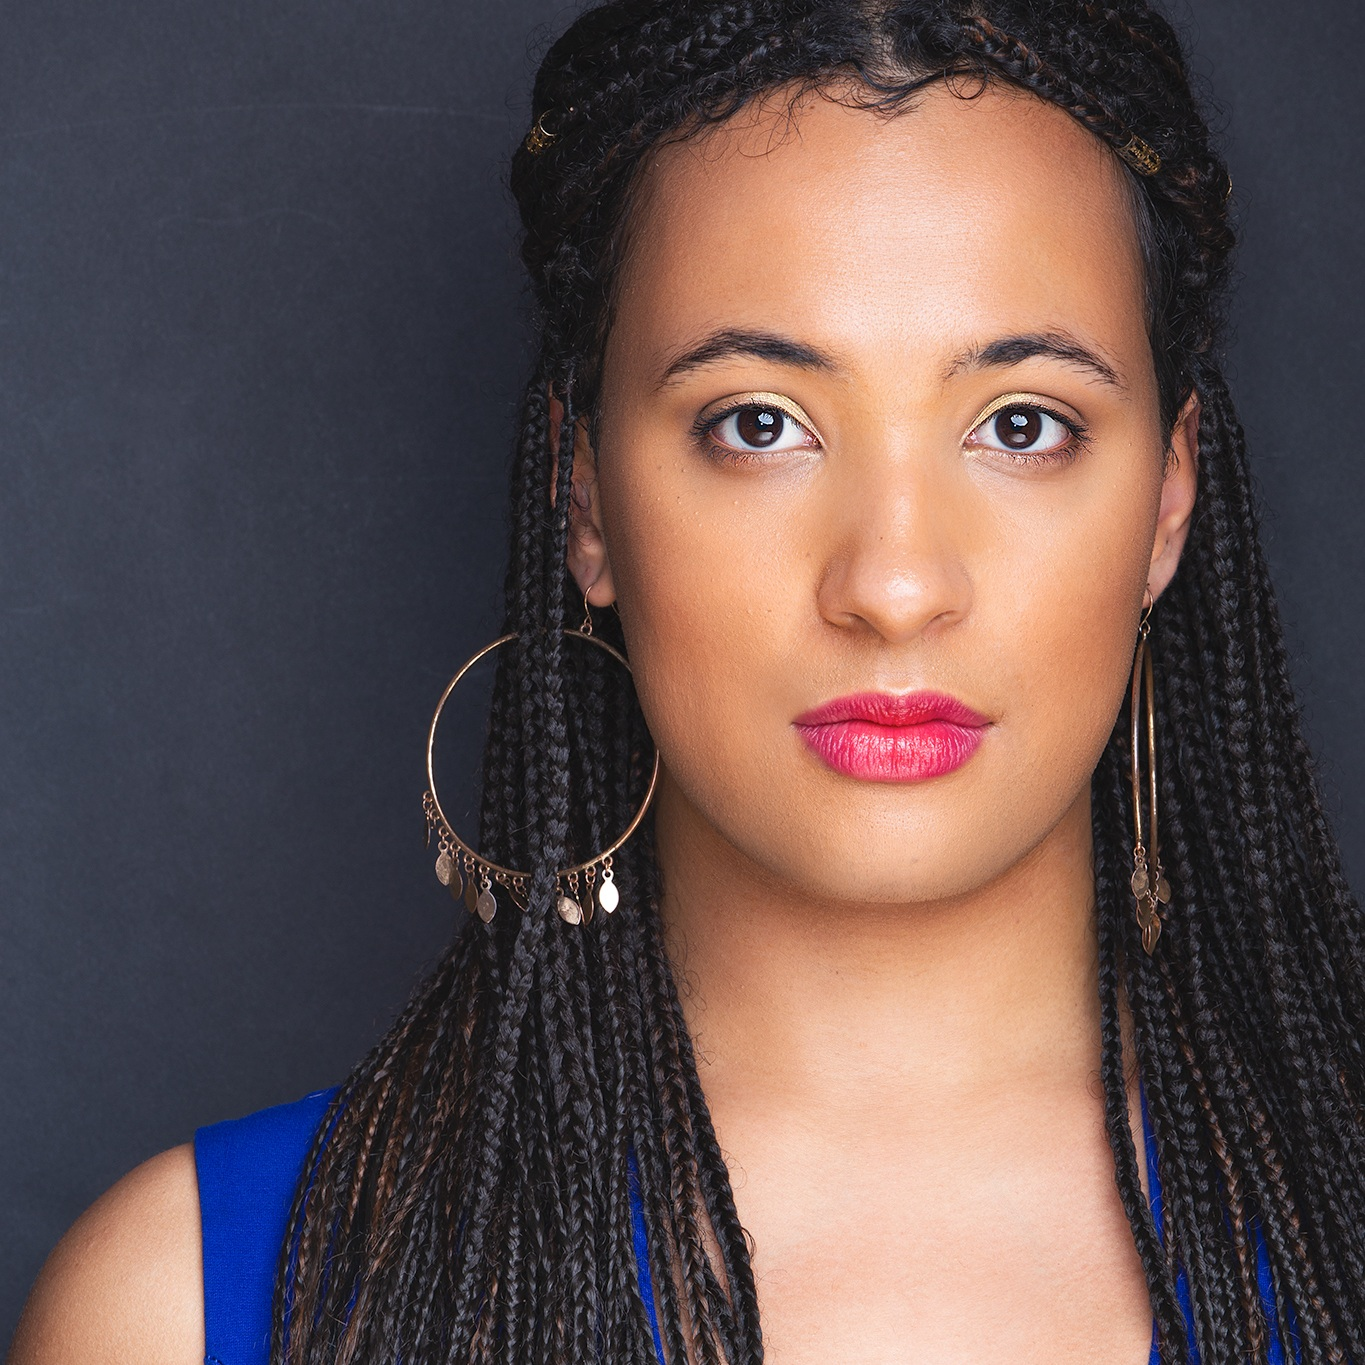 IANNE FIELDS STEWART - (they/them, she/her) is a black, queer, and transfeminine New York-based storyteller working at the intersection of theatre and activism.